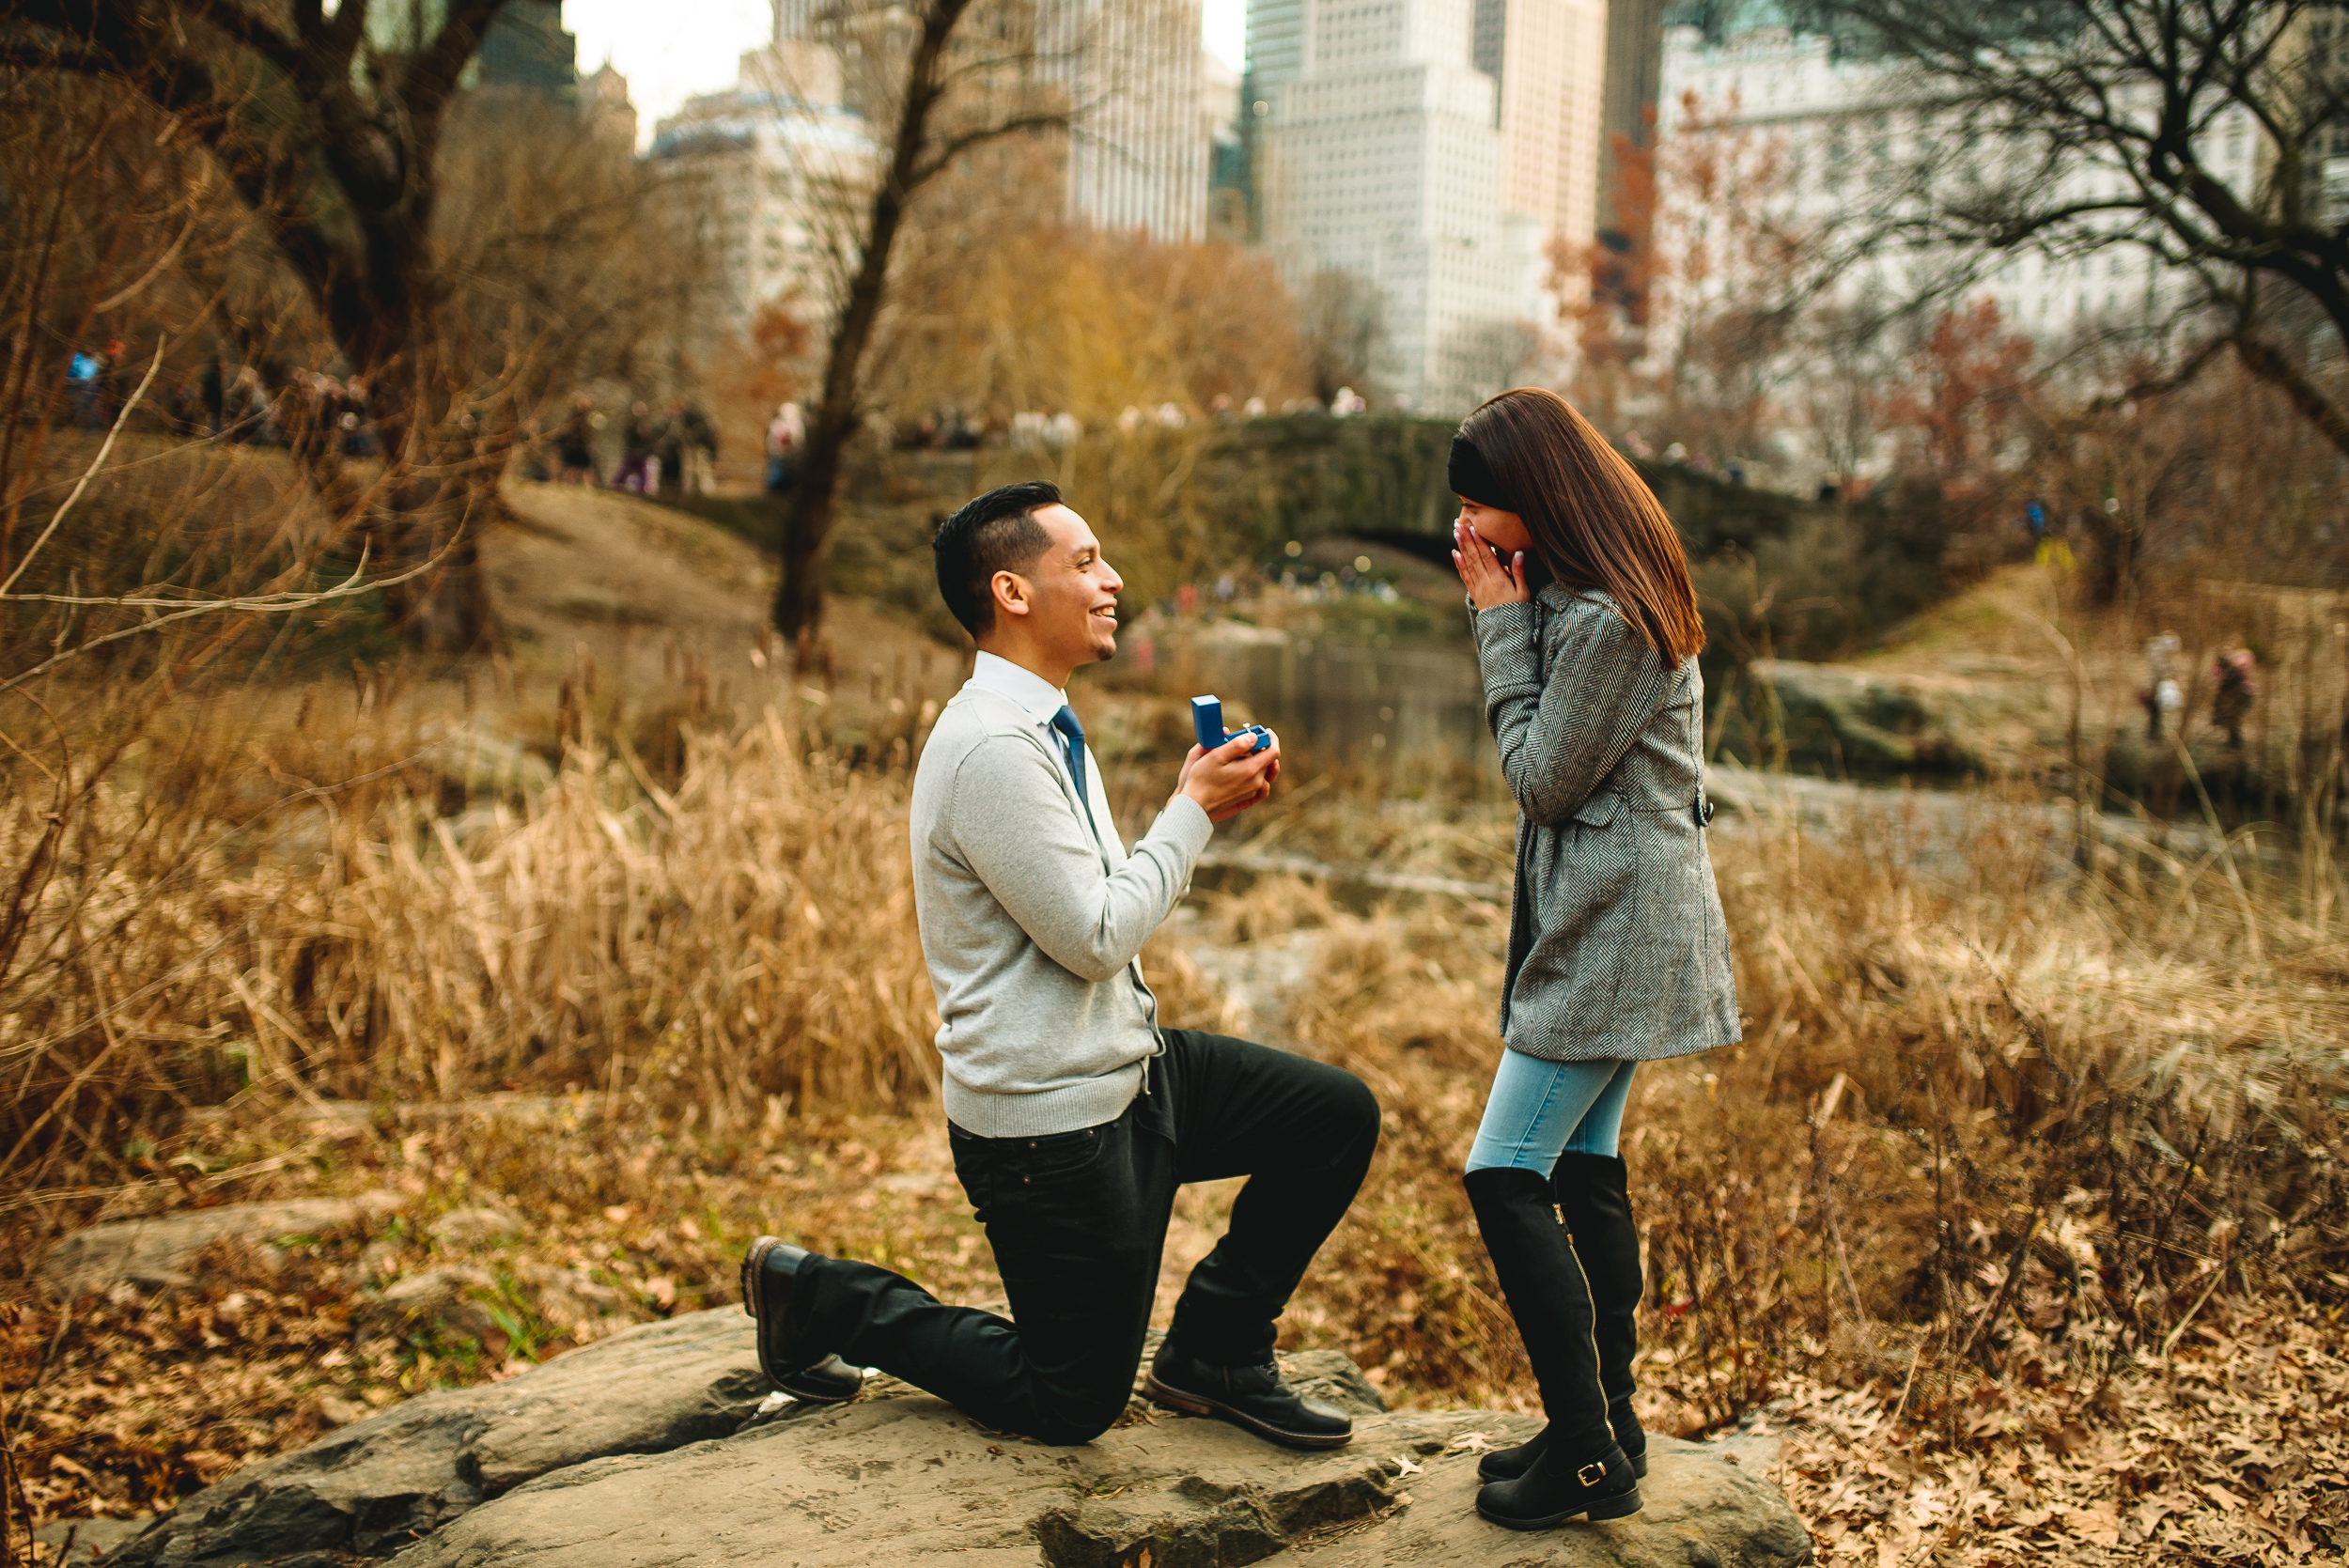 Propsoal-Central-Park-photographer-engagement-photography.jpg